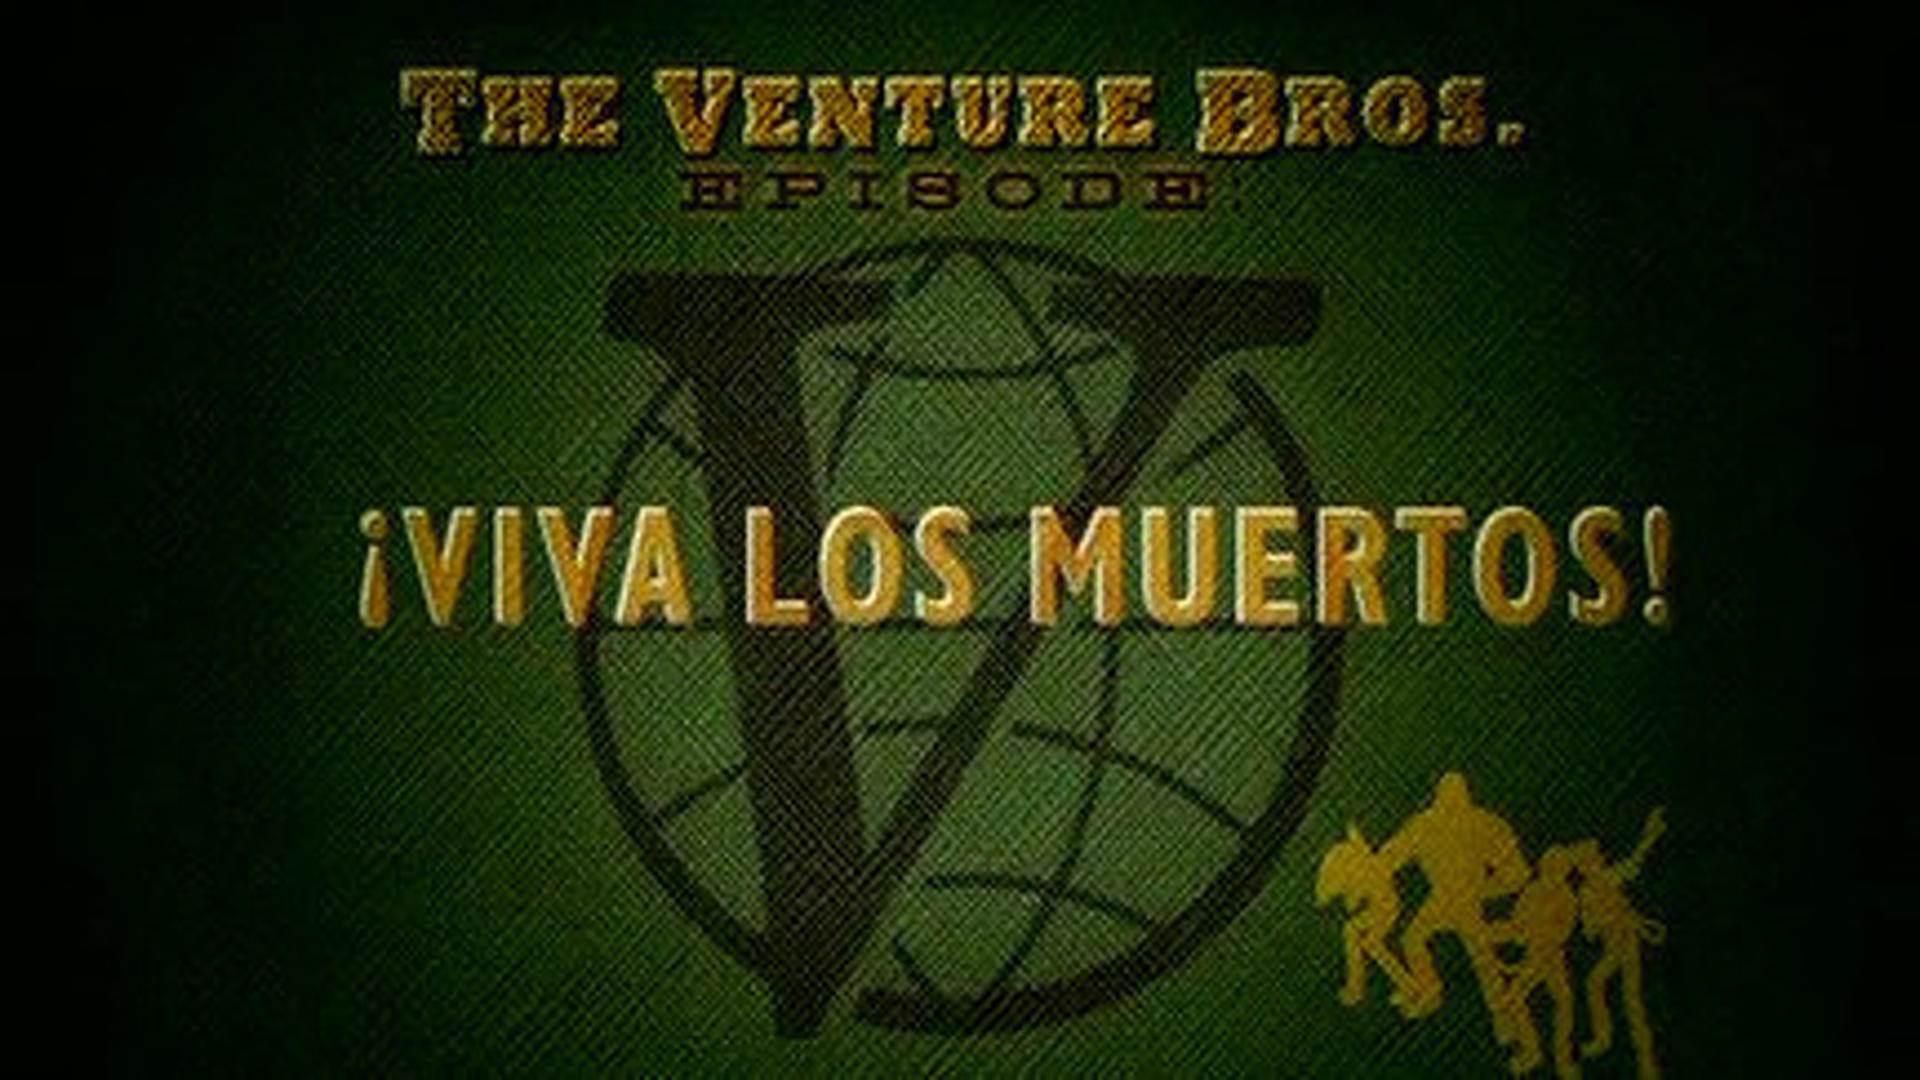 1920x1080 The Venture Bros. (S02E11): Viva los Muertos! Summary - Season 2 Episode 11  Guide